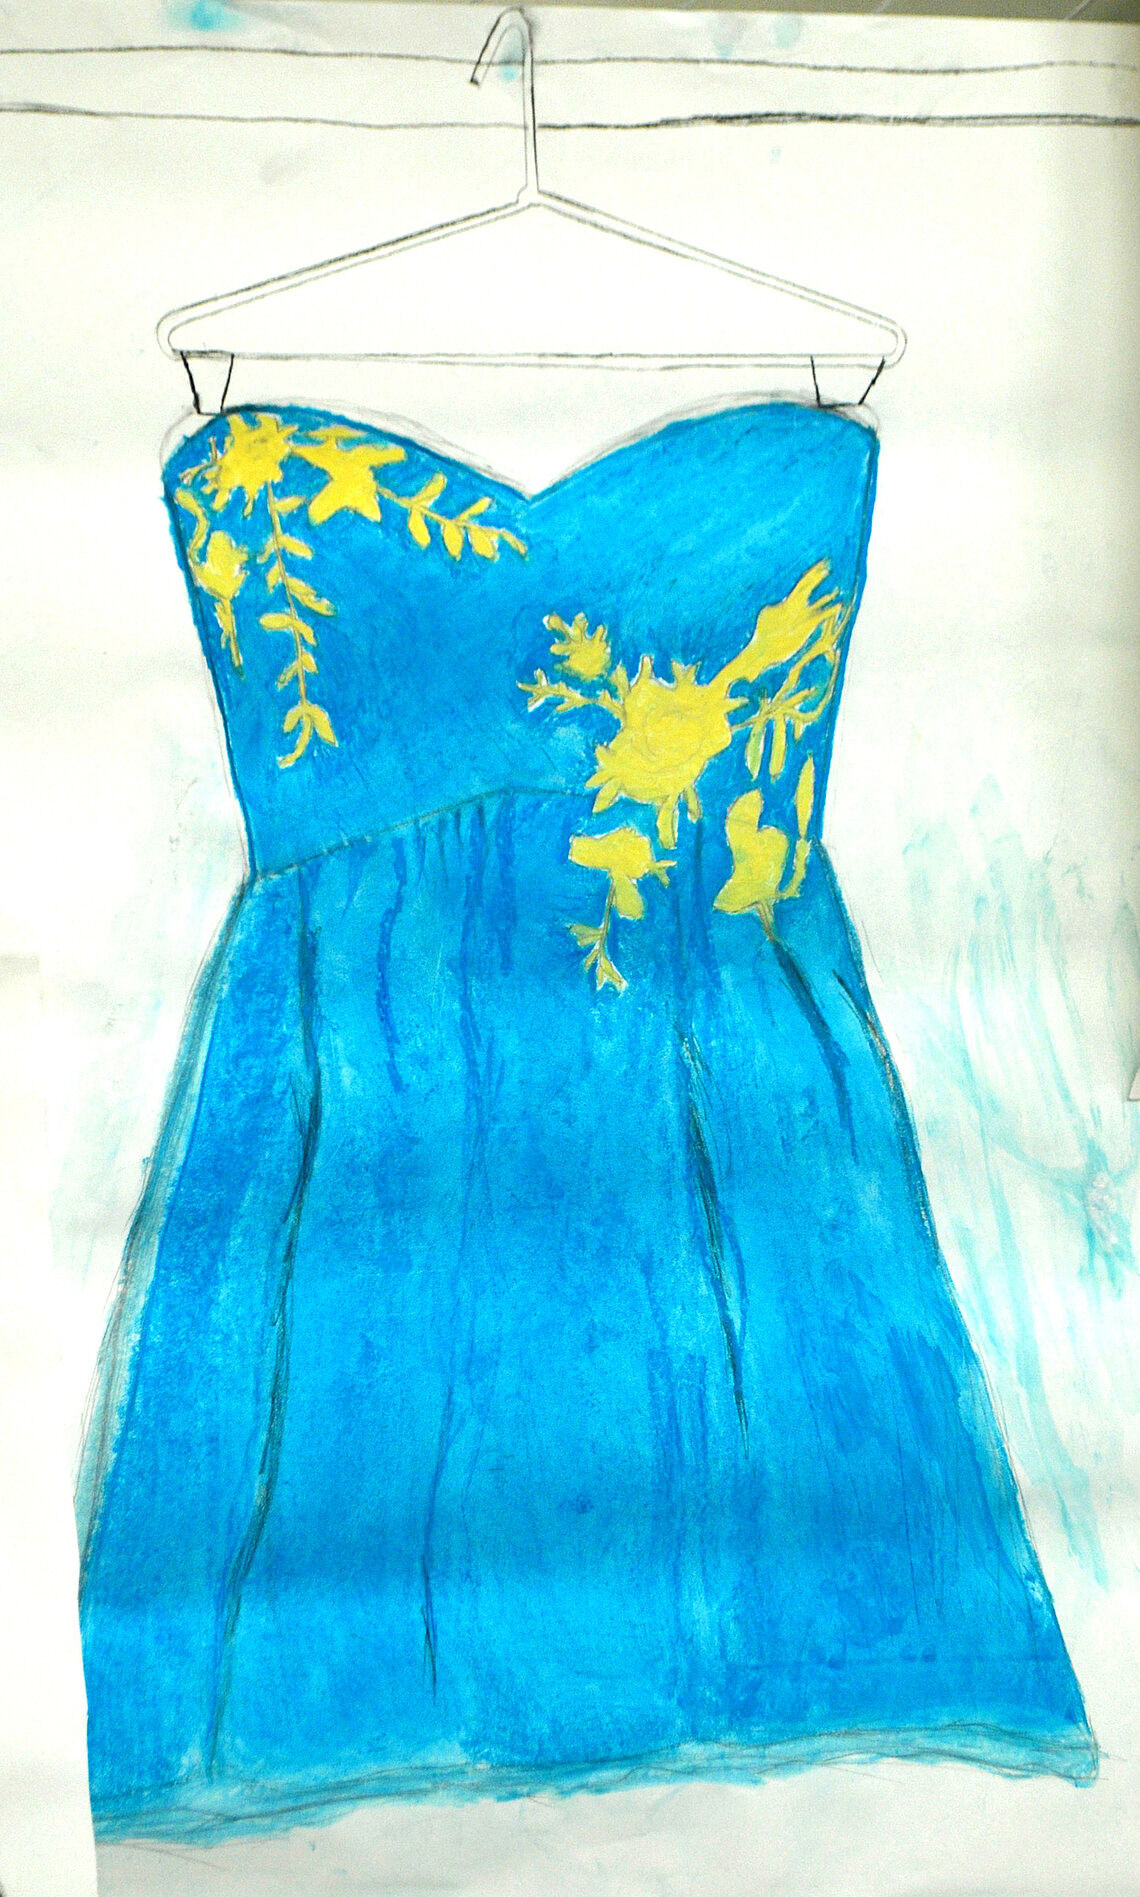 Drawing of a blue dress with yellow patterns on it.